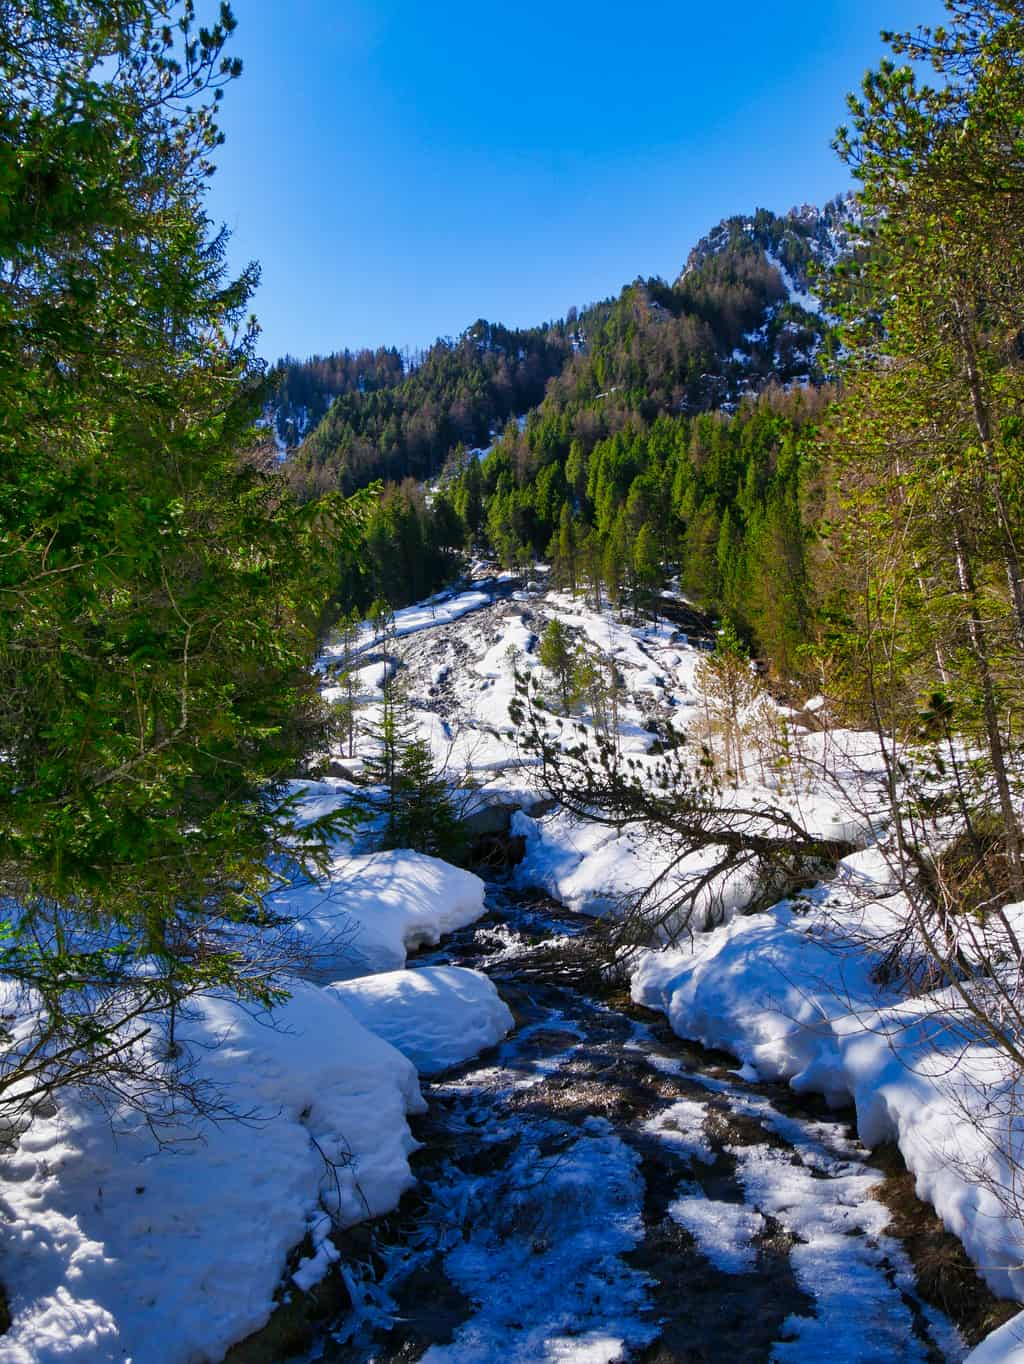 Snowy stream surrounded by green trees and deep blue sky